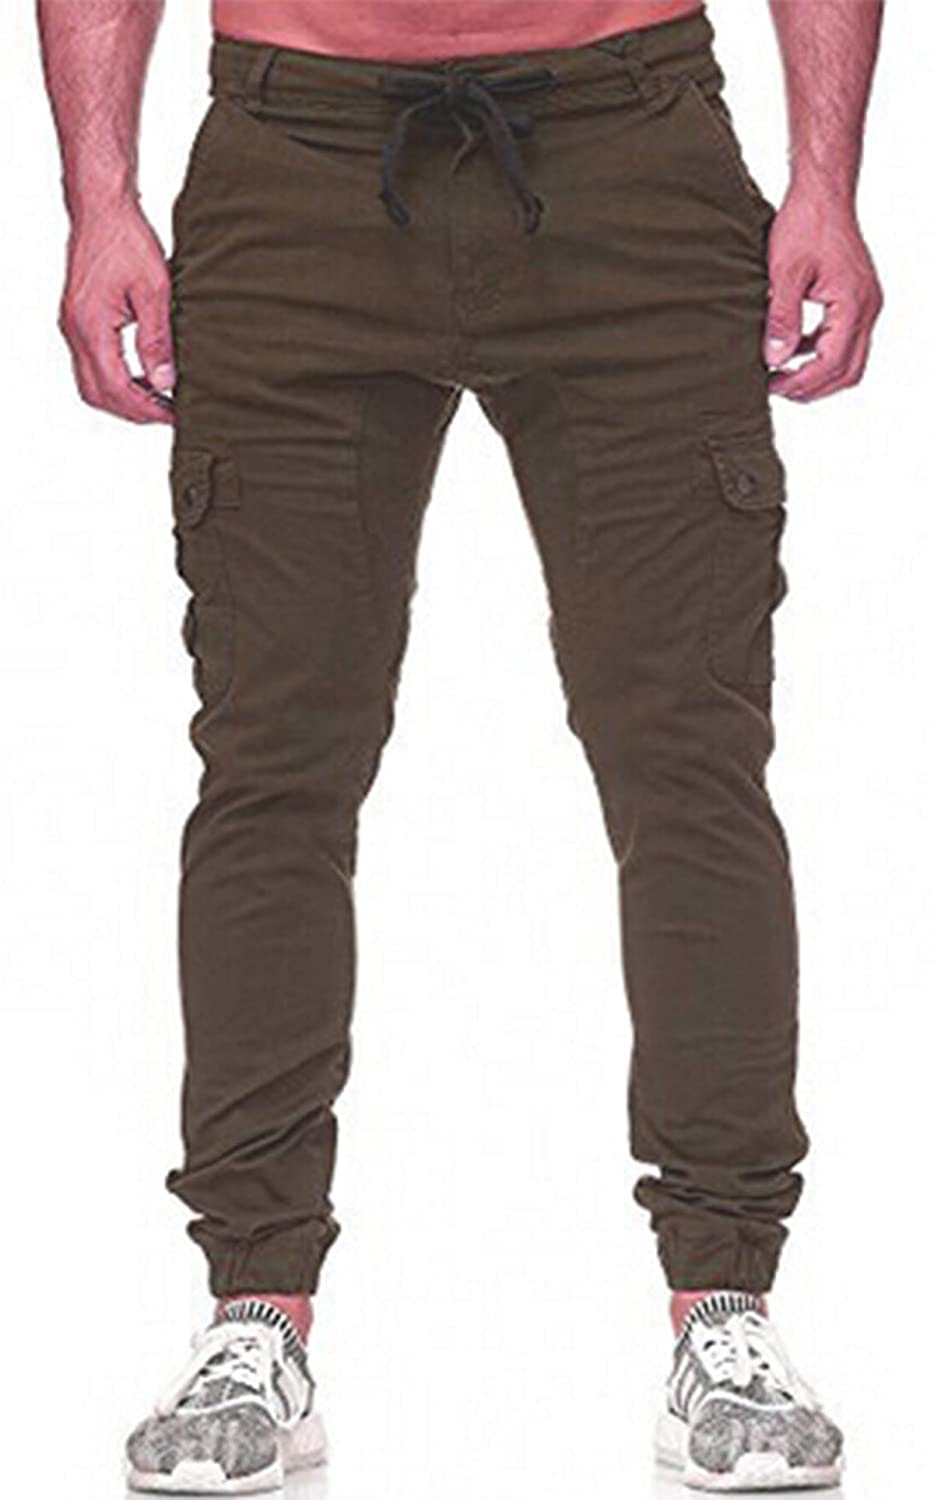 TheFound Mens Multi Pockets Casual Cargo Pants Fashion Jogging Trousers